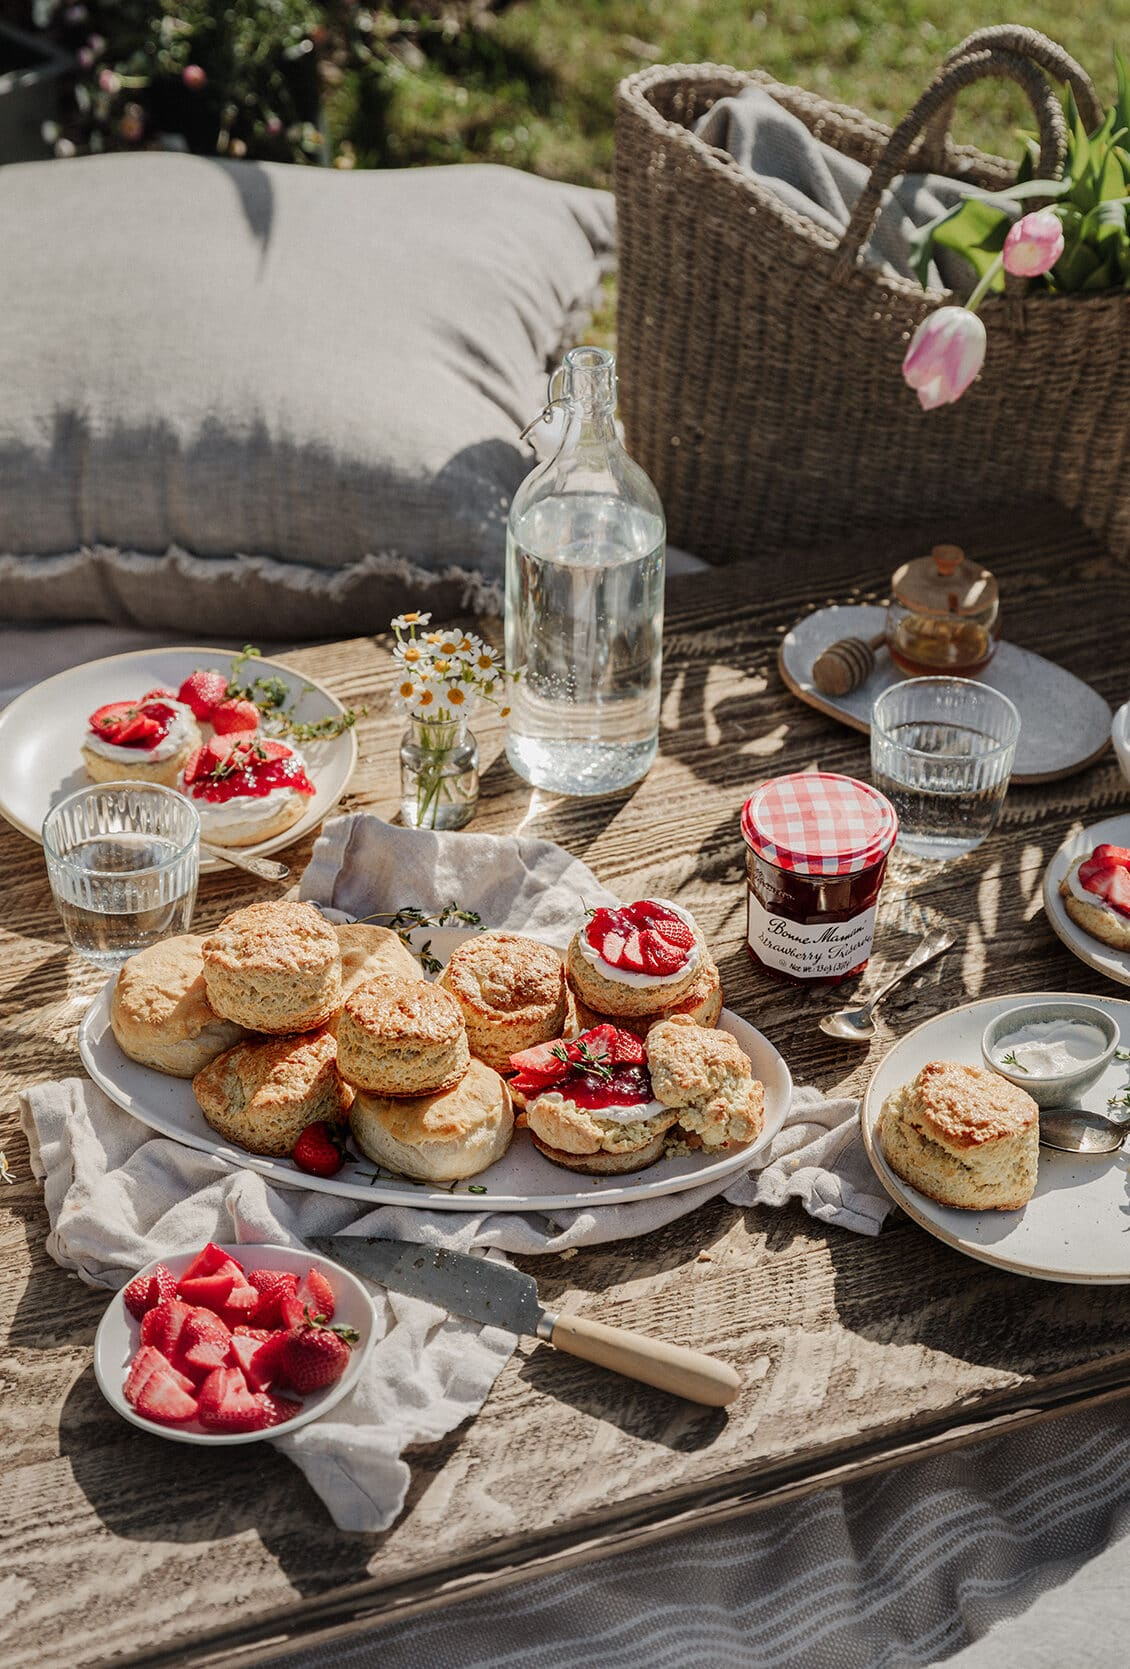 Buttery strawberry shortcakes filled with creamy whipped labneh and strawberry preserves. The perfect dessert to enjoy on an afternoon picnic!